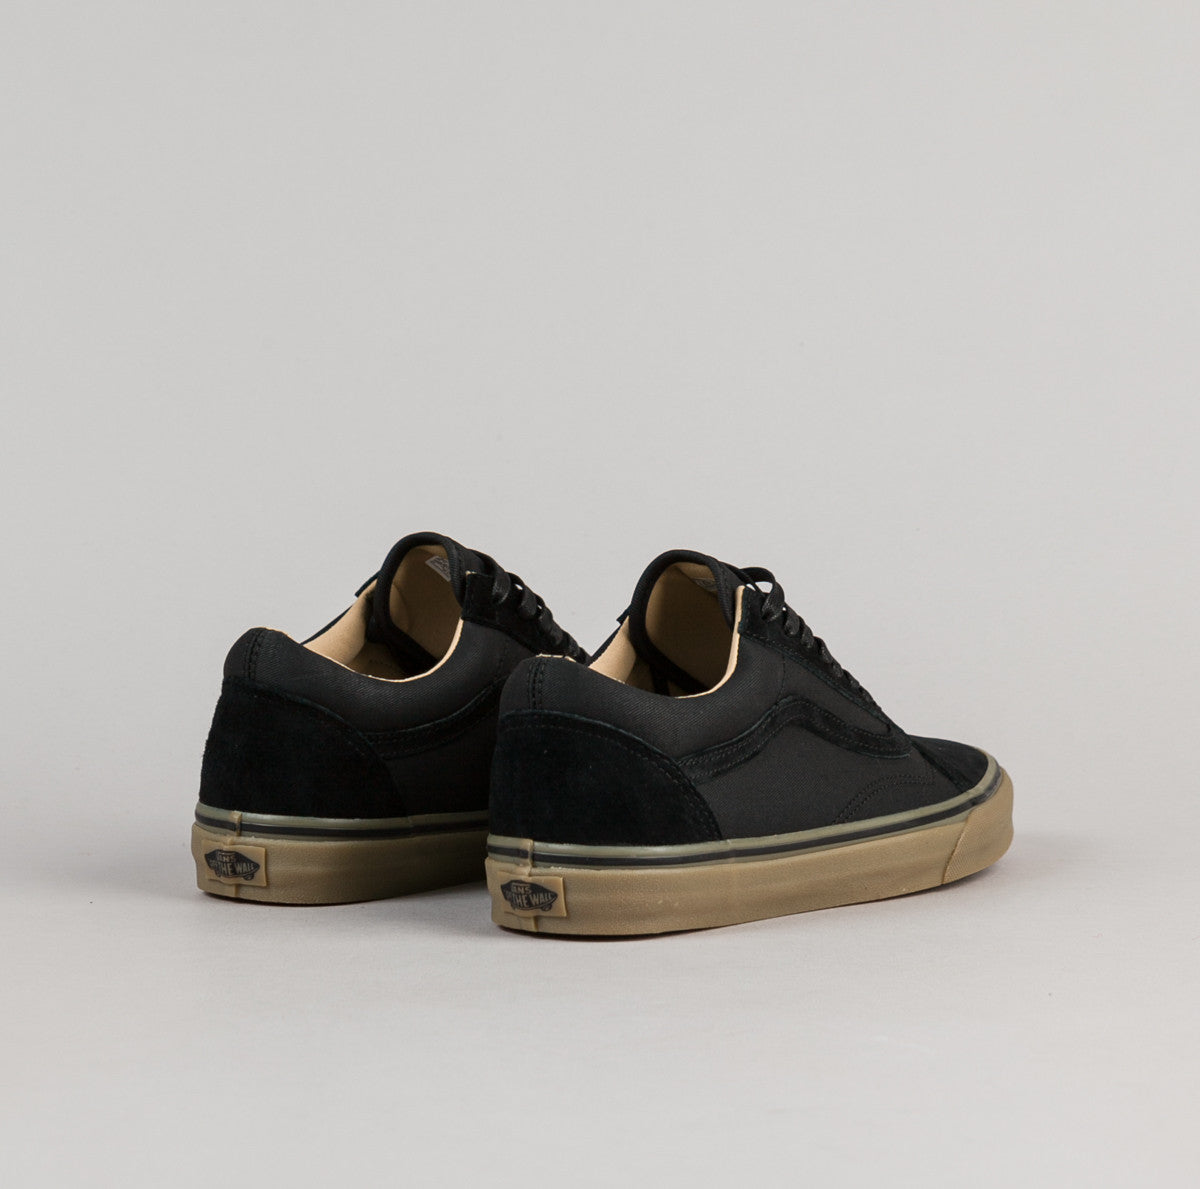 Vans Old Skool Reissue DX Shoes - Coated Black / Medium Gum